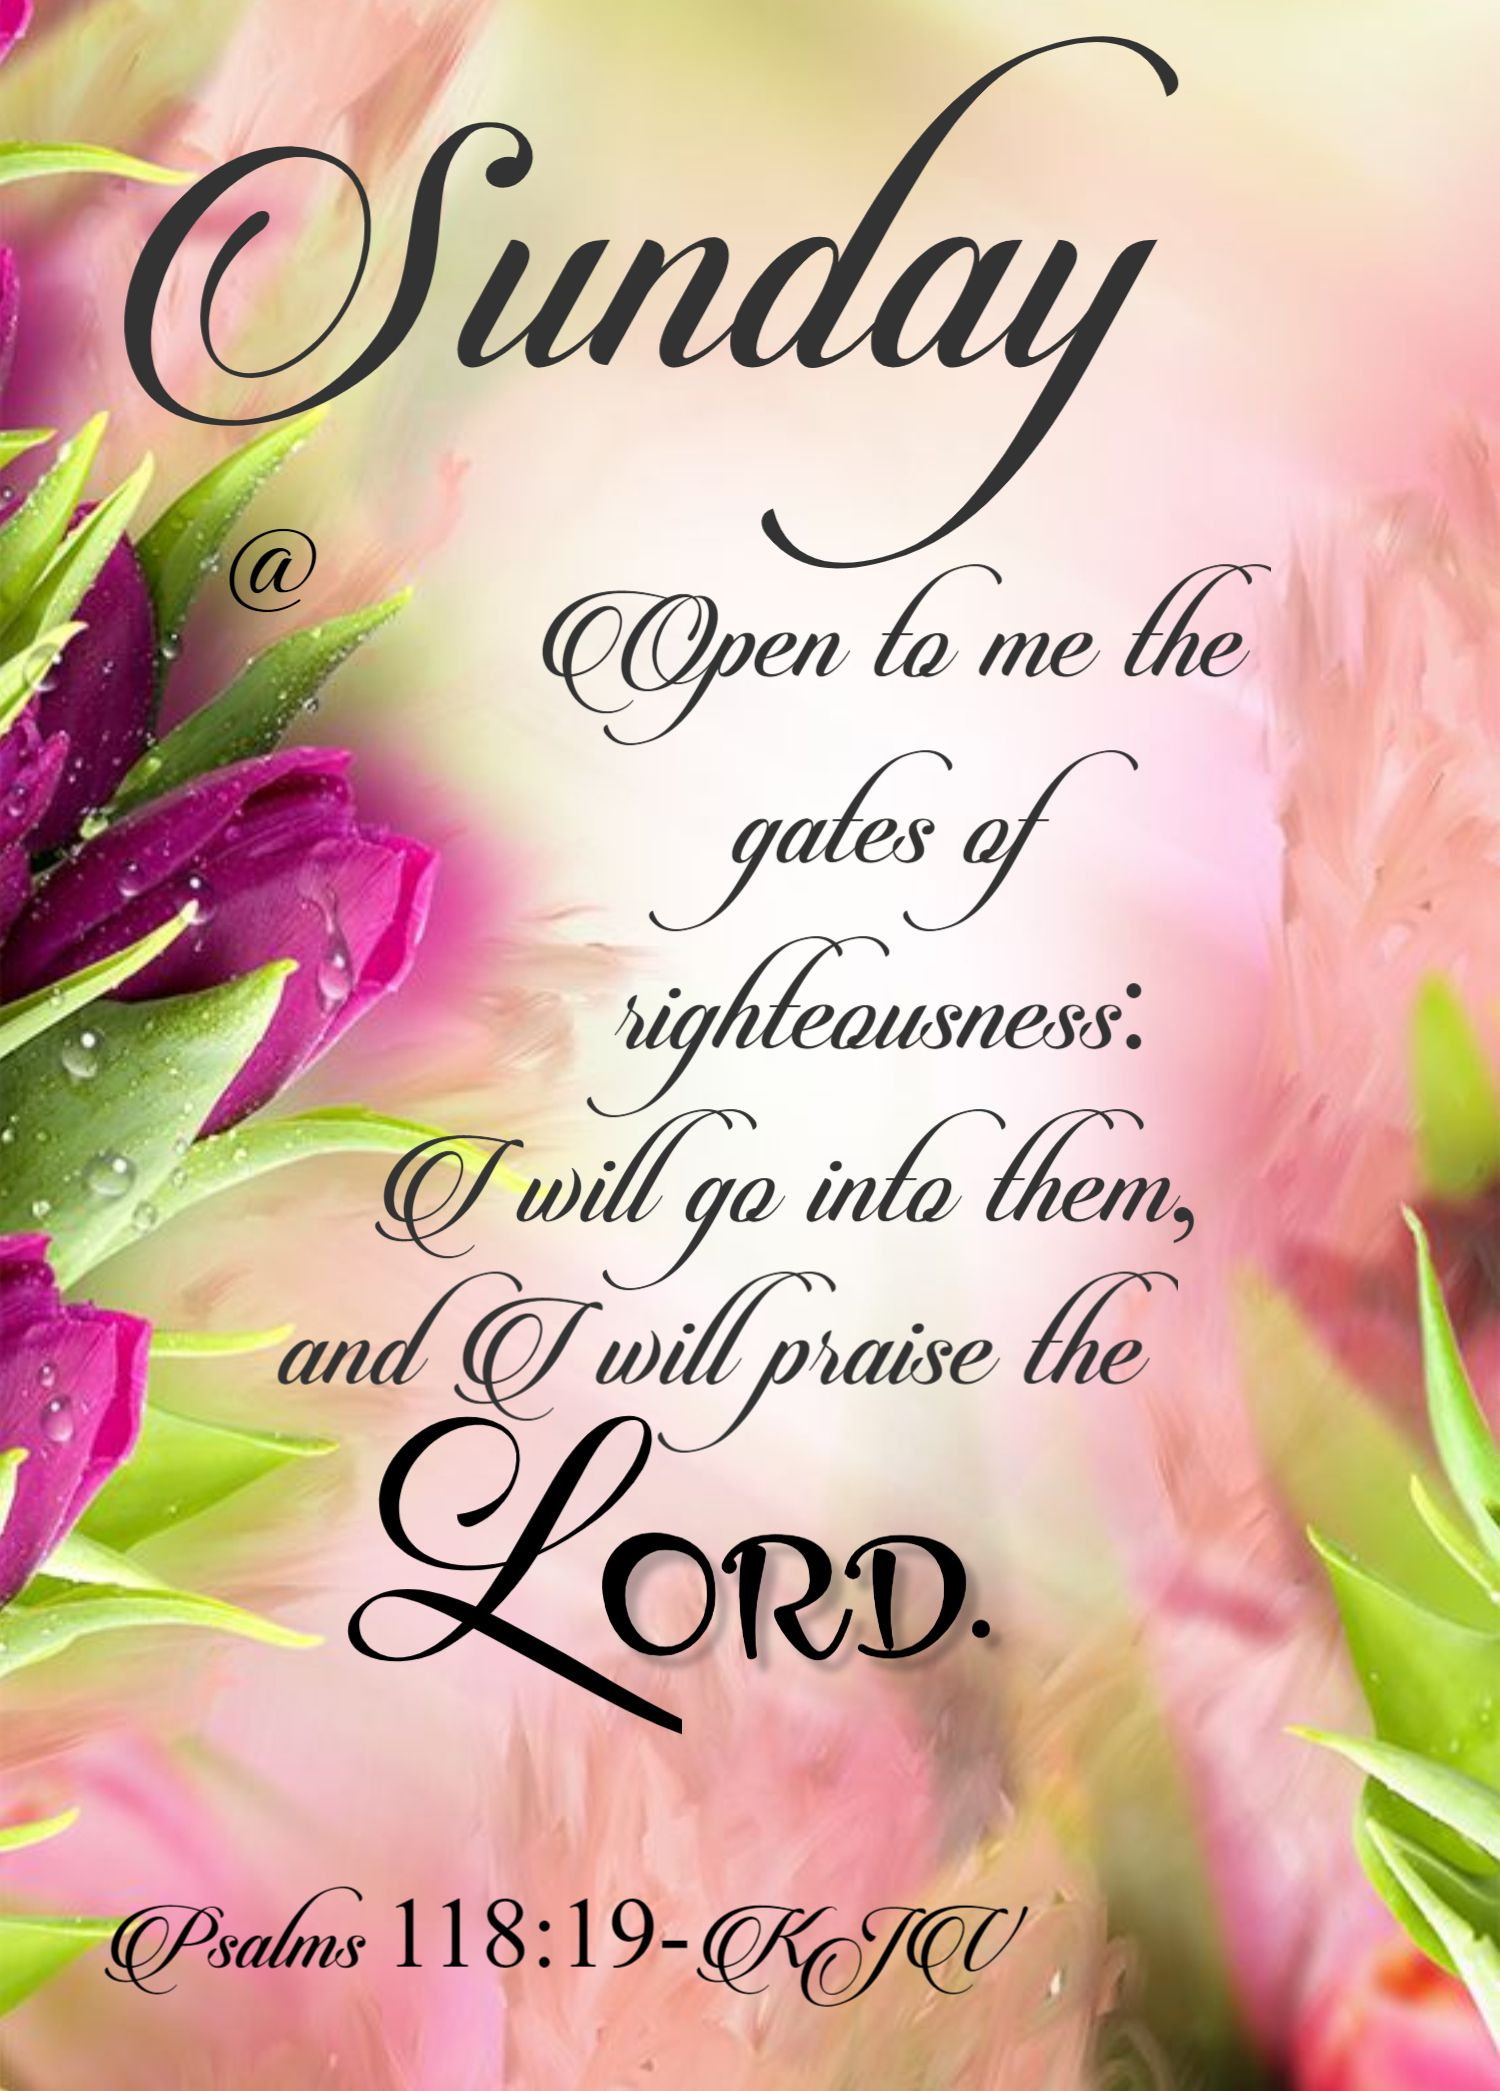 Bible Verse Sunday Blessings Good Morning Images - Viral and Trend